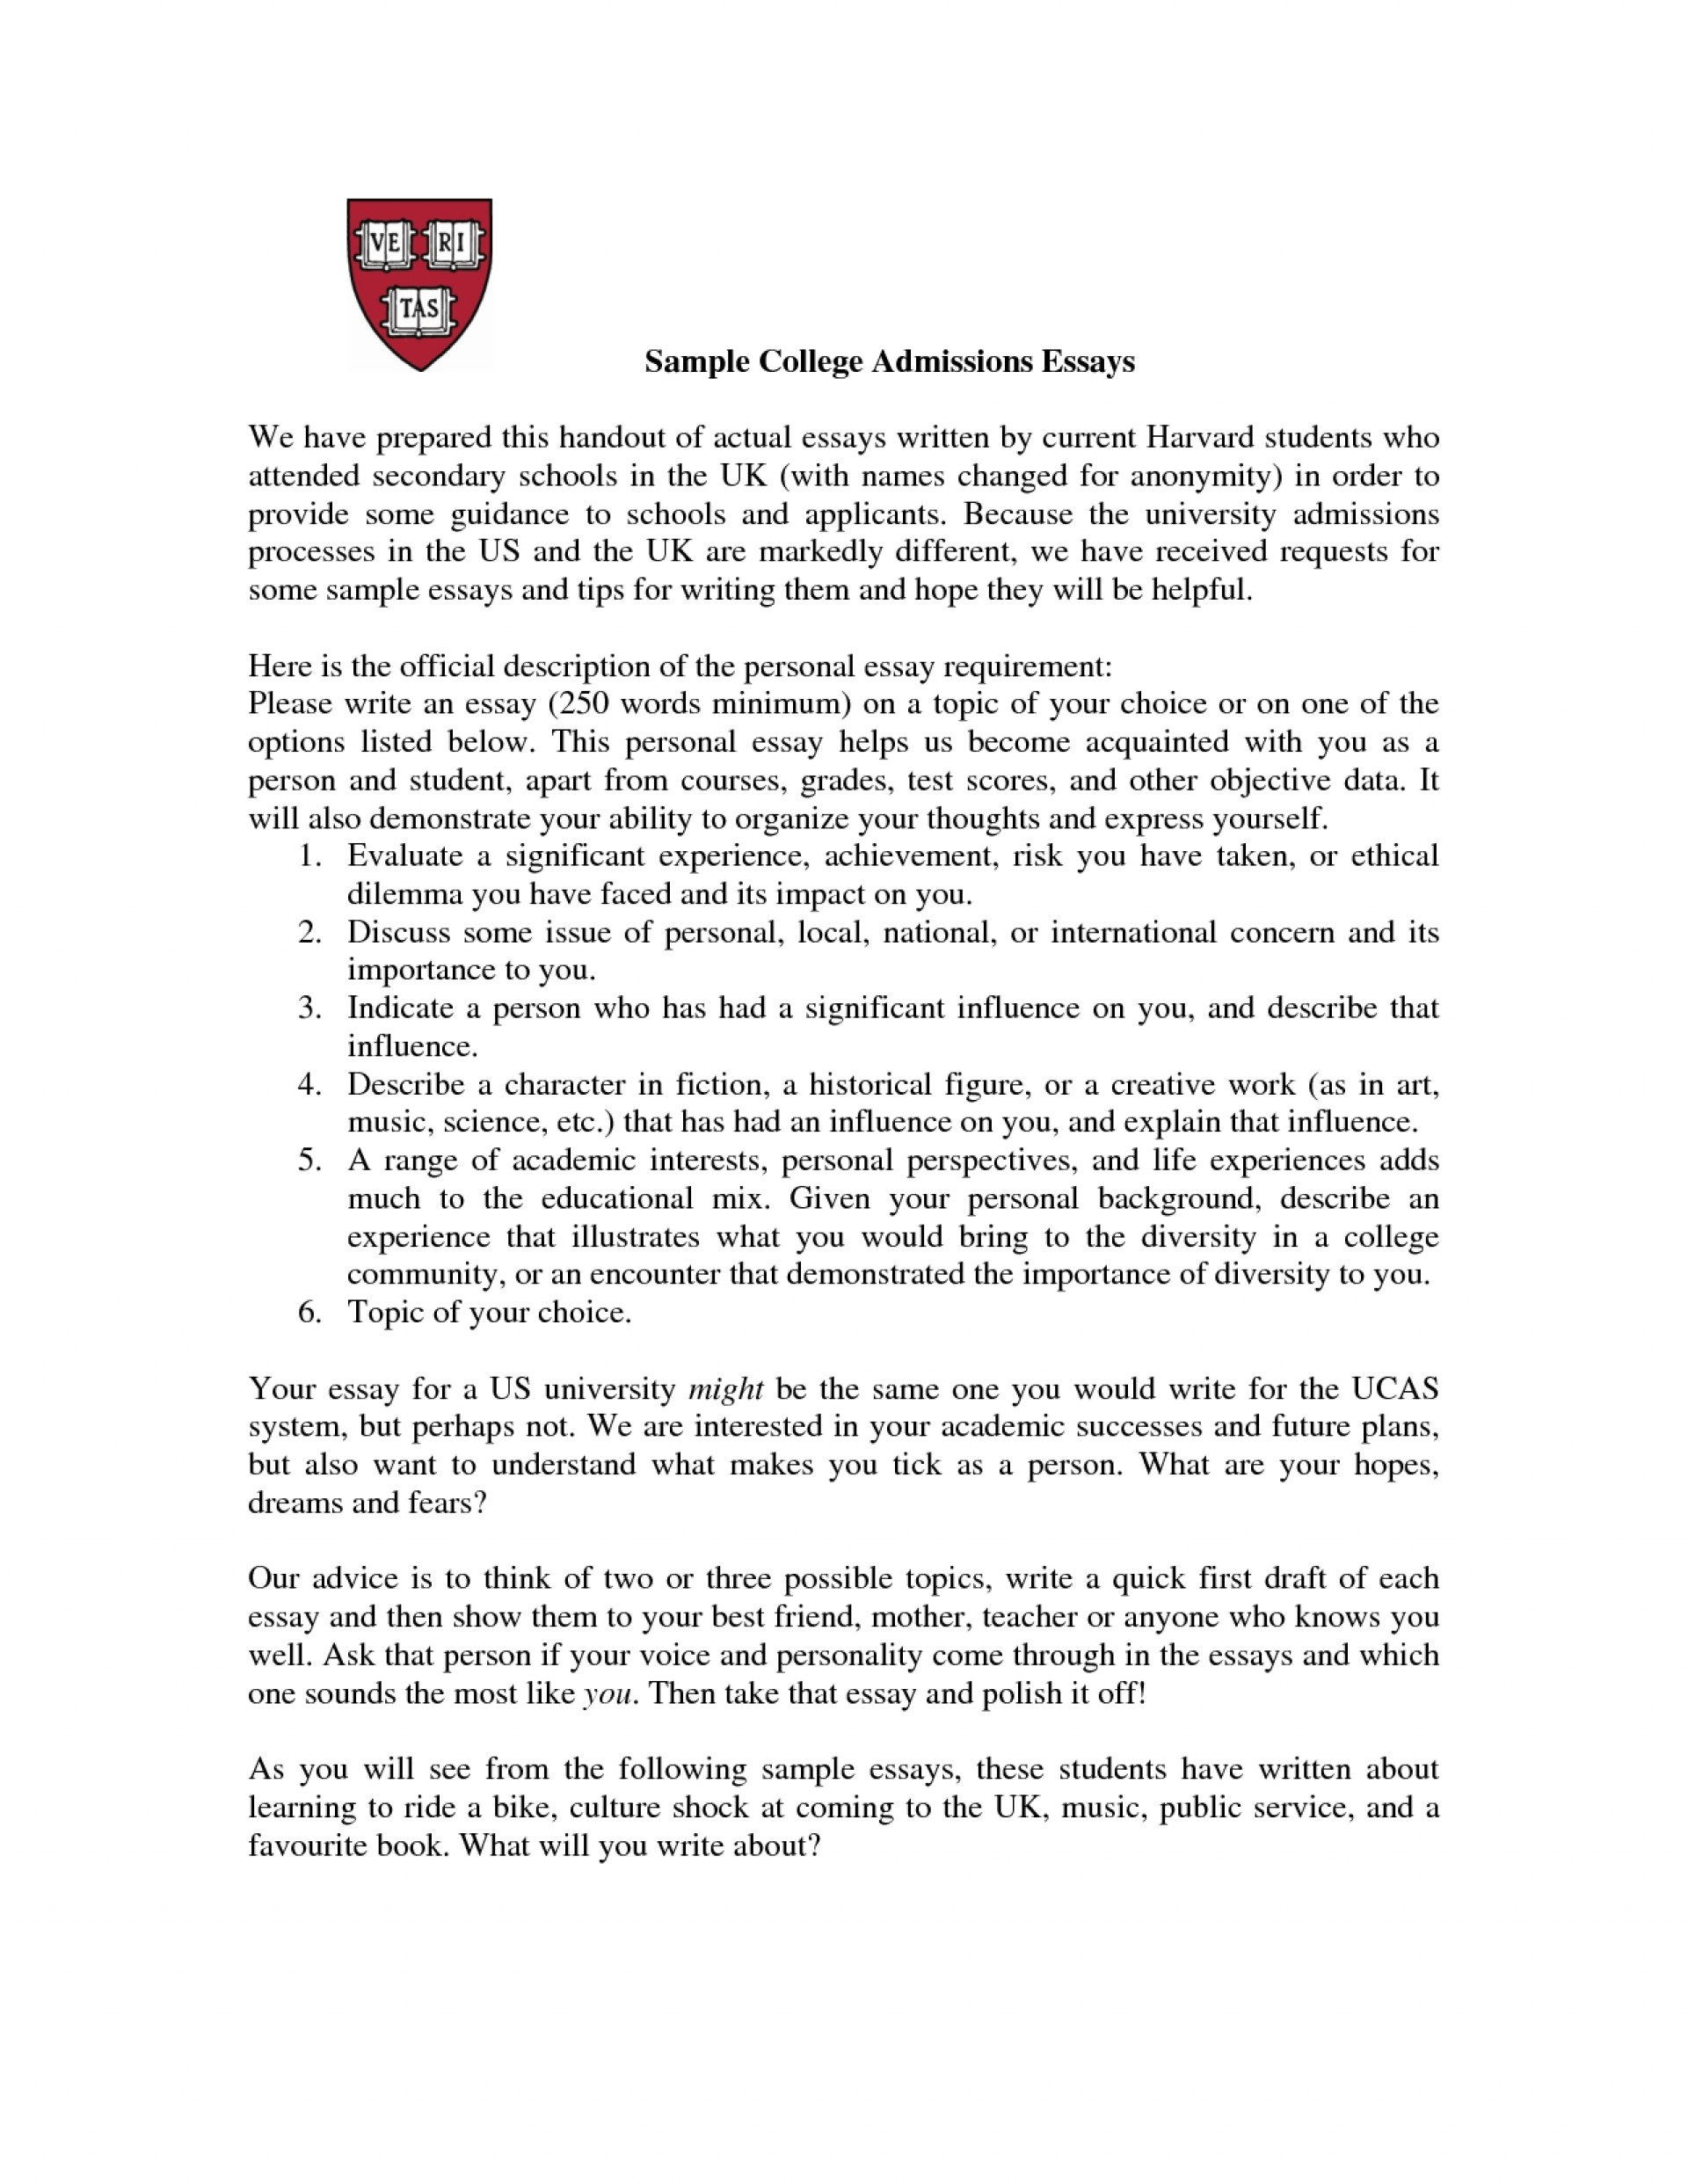 004 Sample College Application Essay Example Surprising Essays That Worked For Ivy League Pdf 1 1920